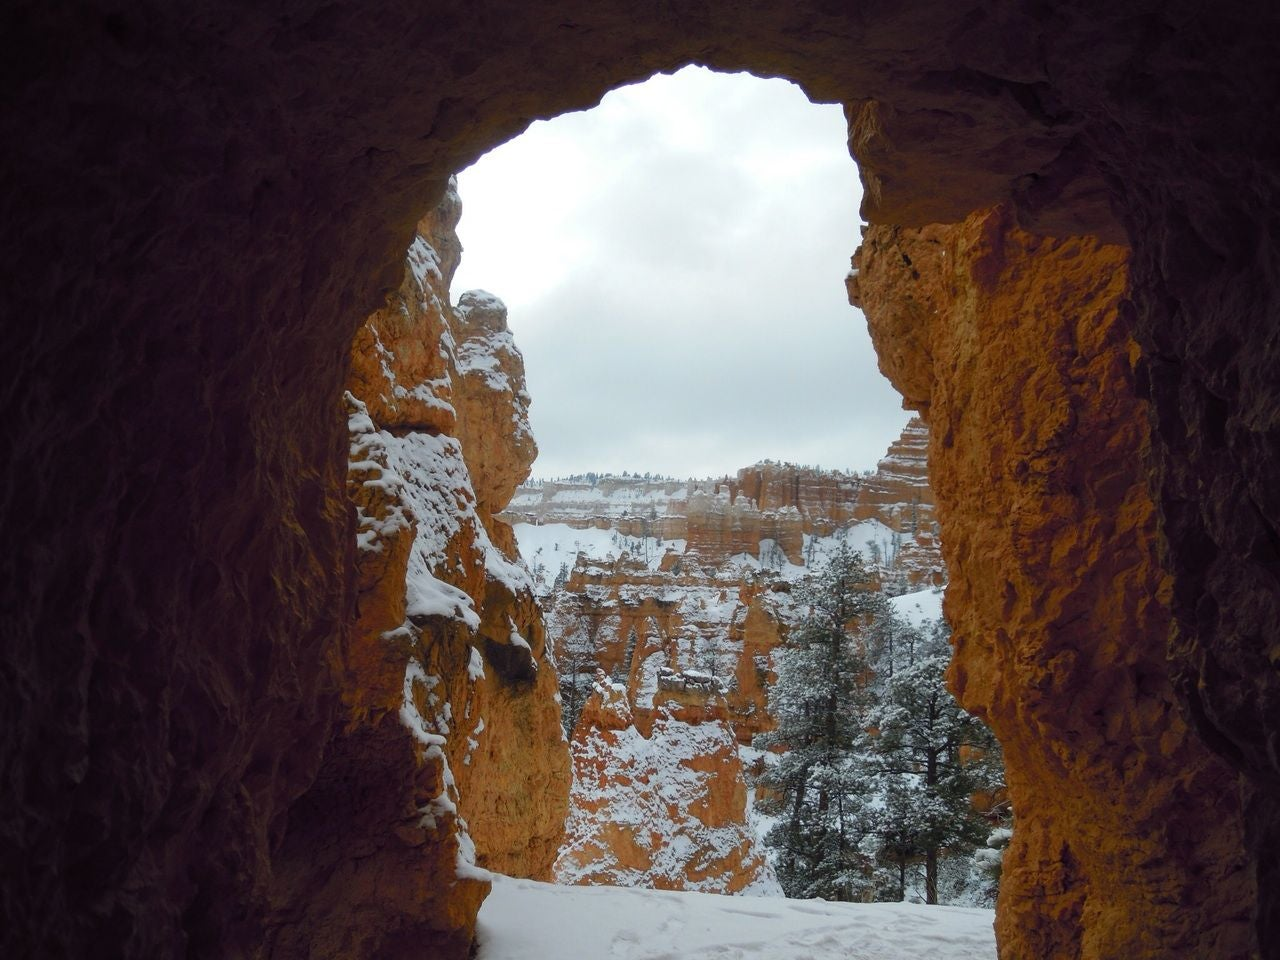 Relieve en Bryce Canyon